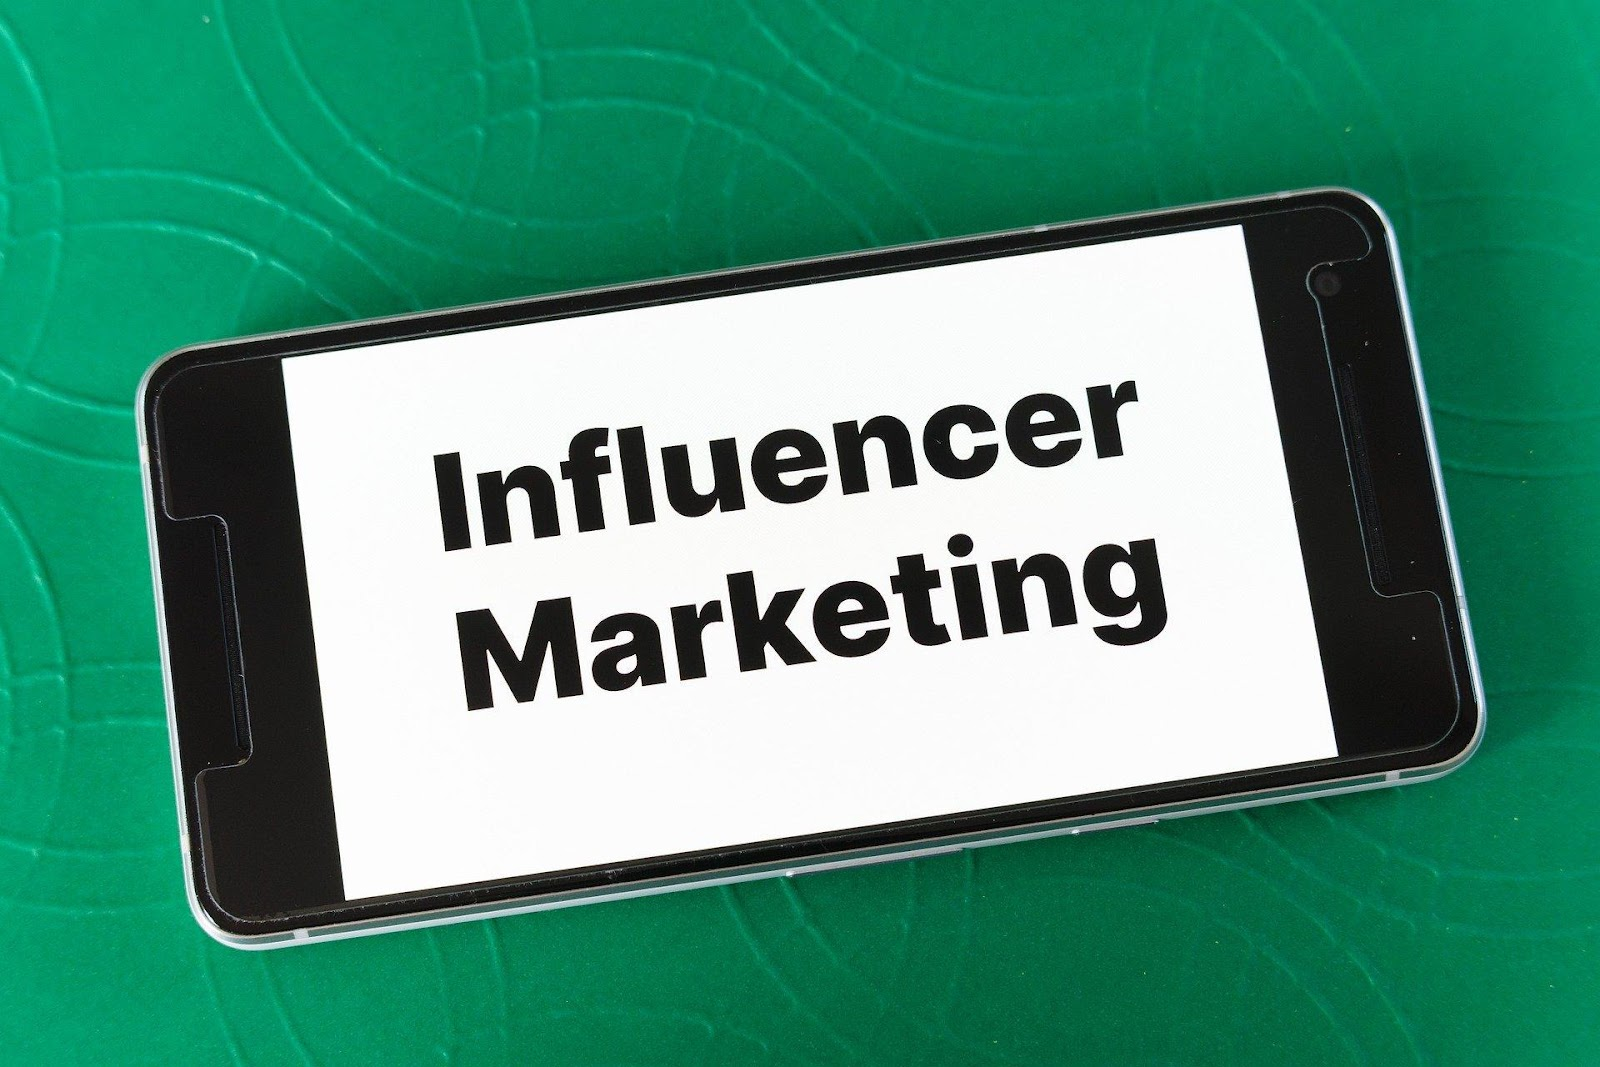 F:\Sohel\Brett\afluencer.com\Jennie articles\images\Influencer Marketing Connects with Food Brands.jpg